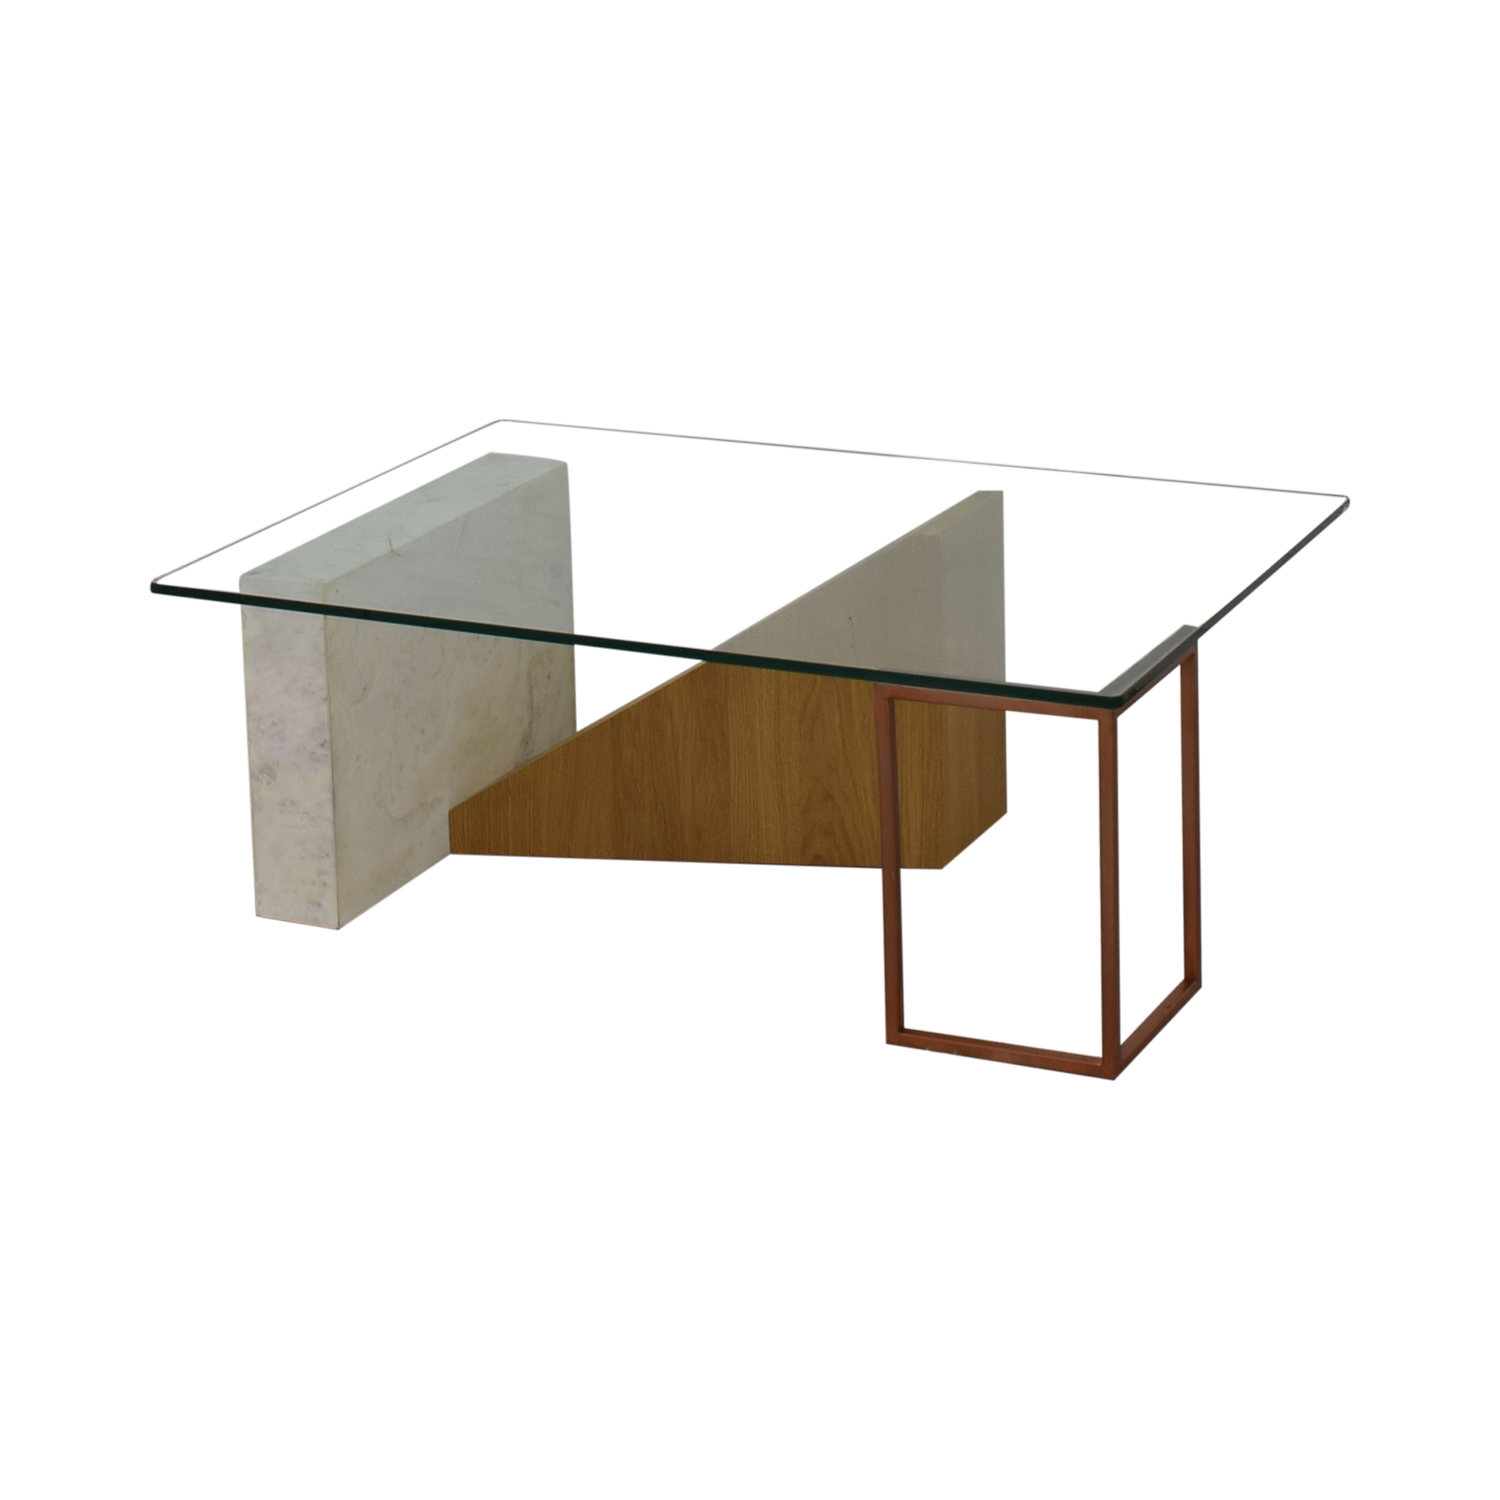 West Elm West Elm Bowie Coffee Table on sale